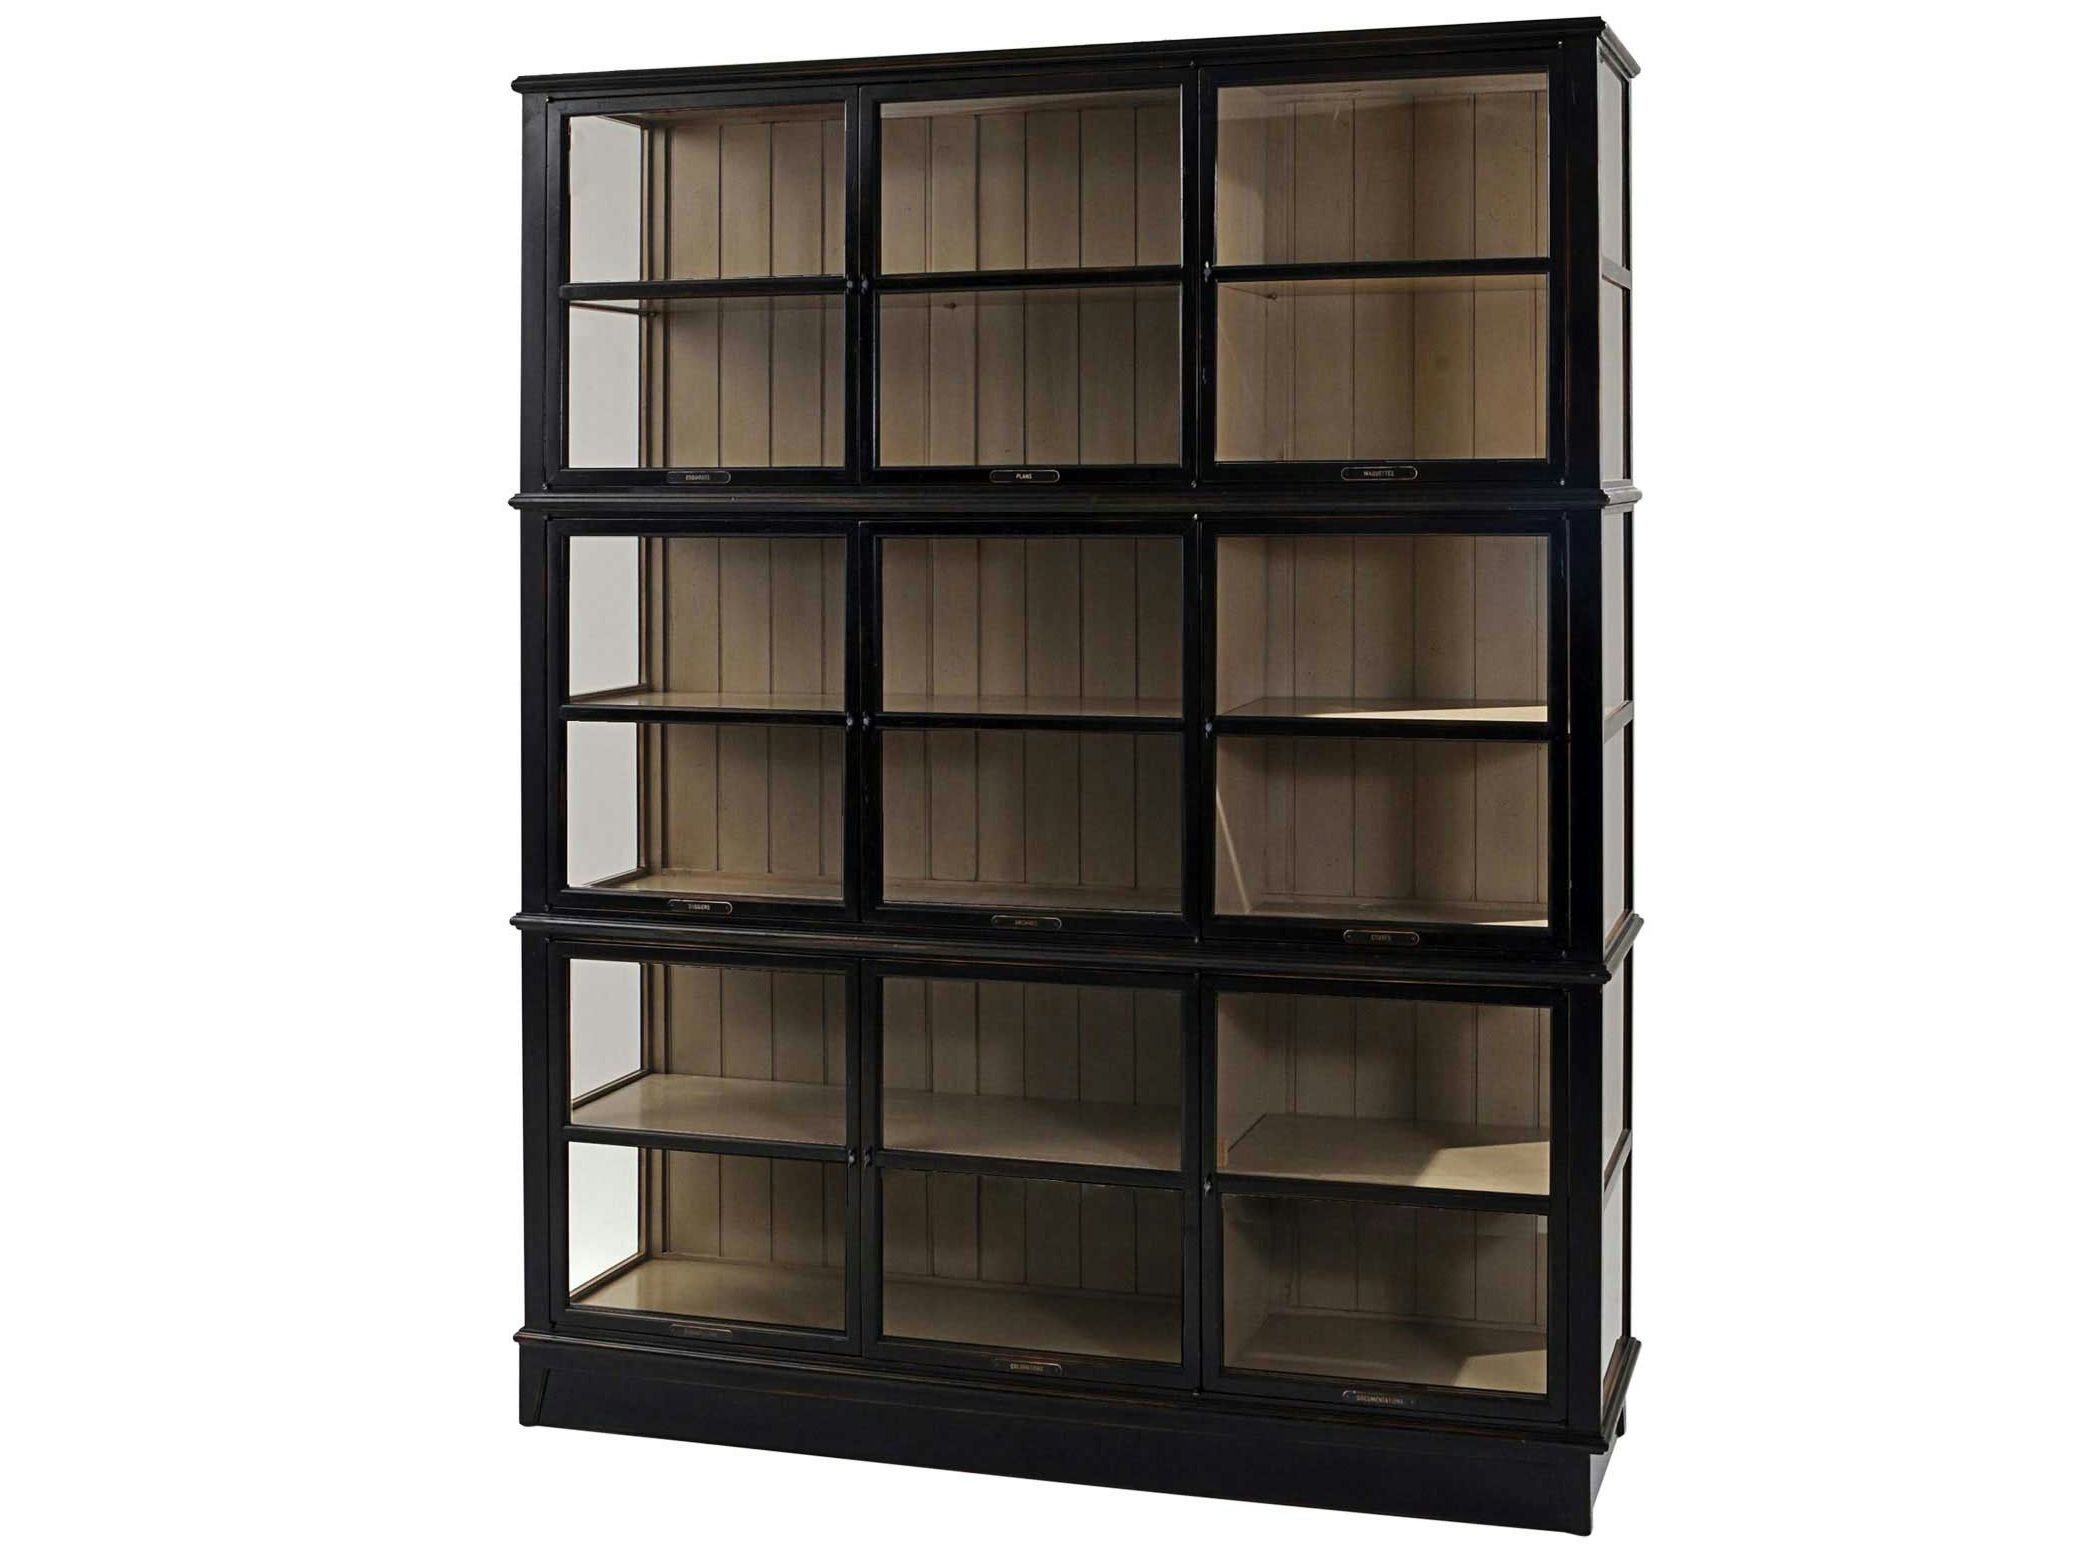 shelves bookcase case cherry bookshelf kitchen storage wooden wood com amazon library dp book dining shelf